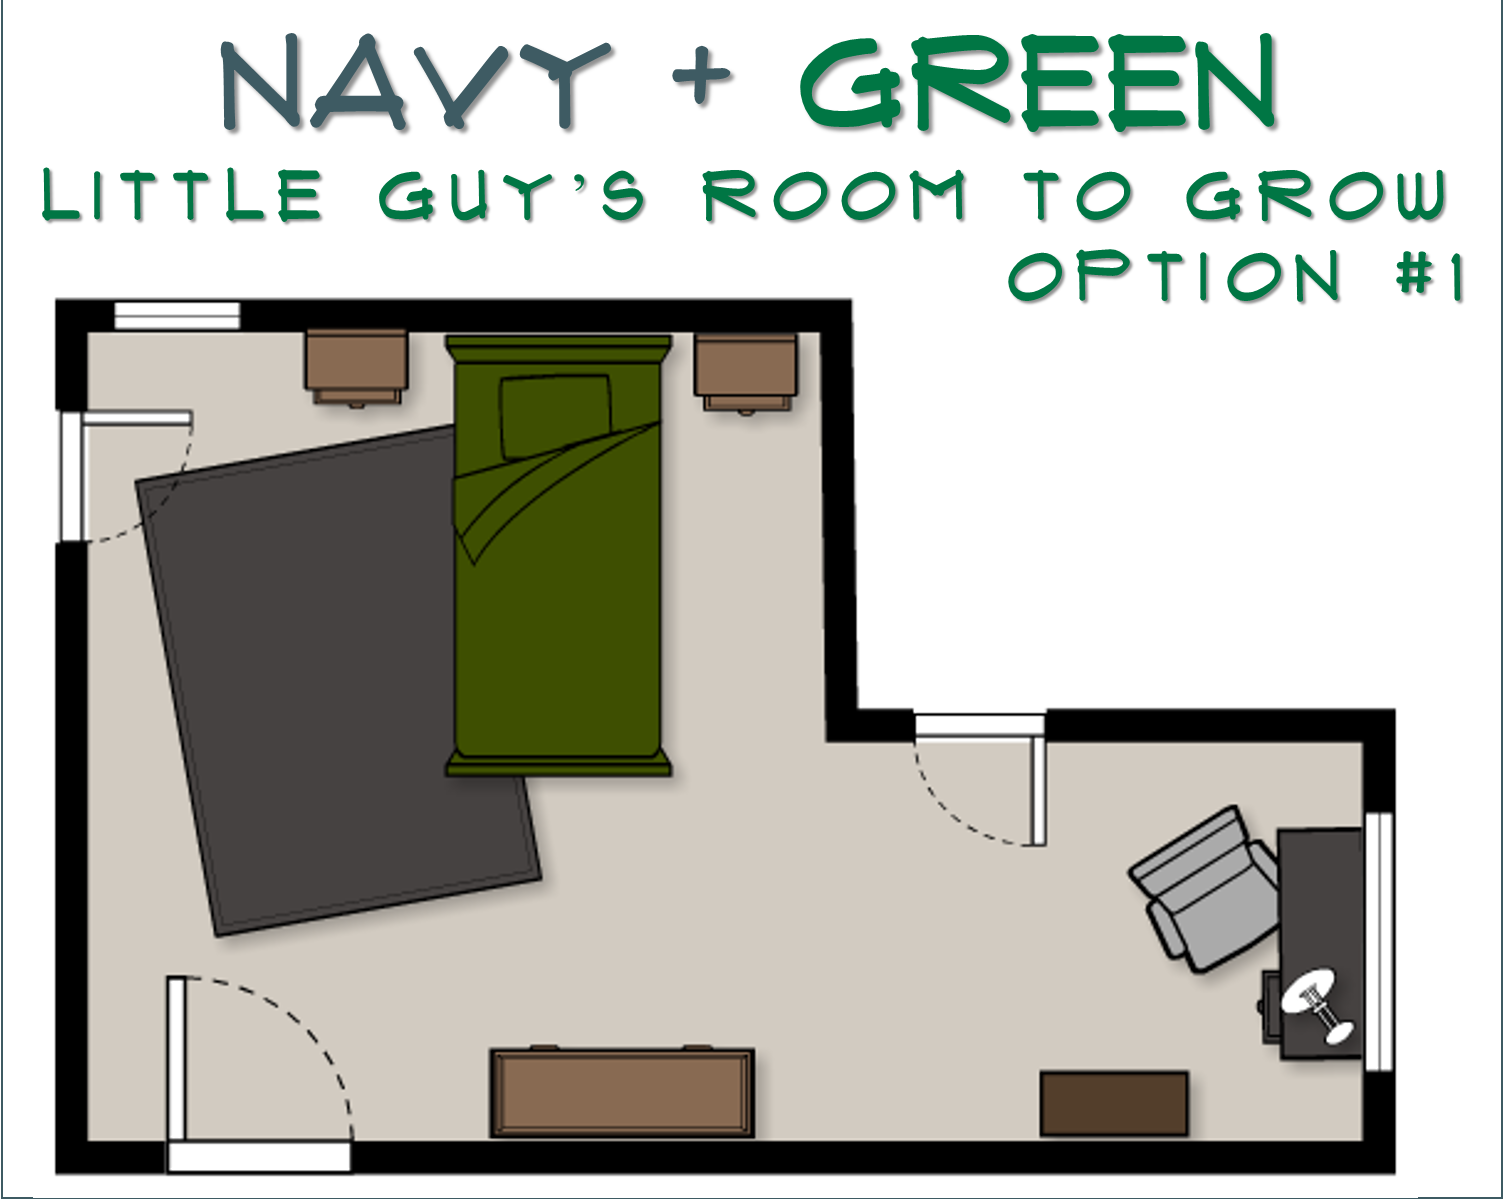 Grow Room Designs With Pictures And Diagram Farmall Cub 12 Volt Wiring Jessica Stout Design Navy Green To E